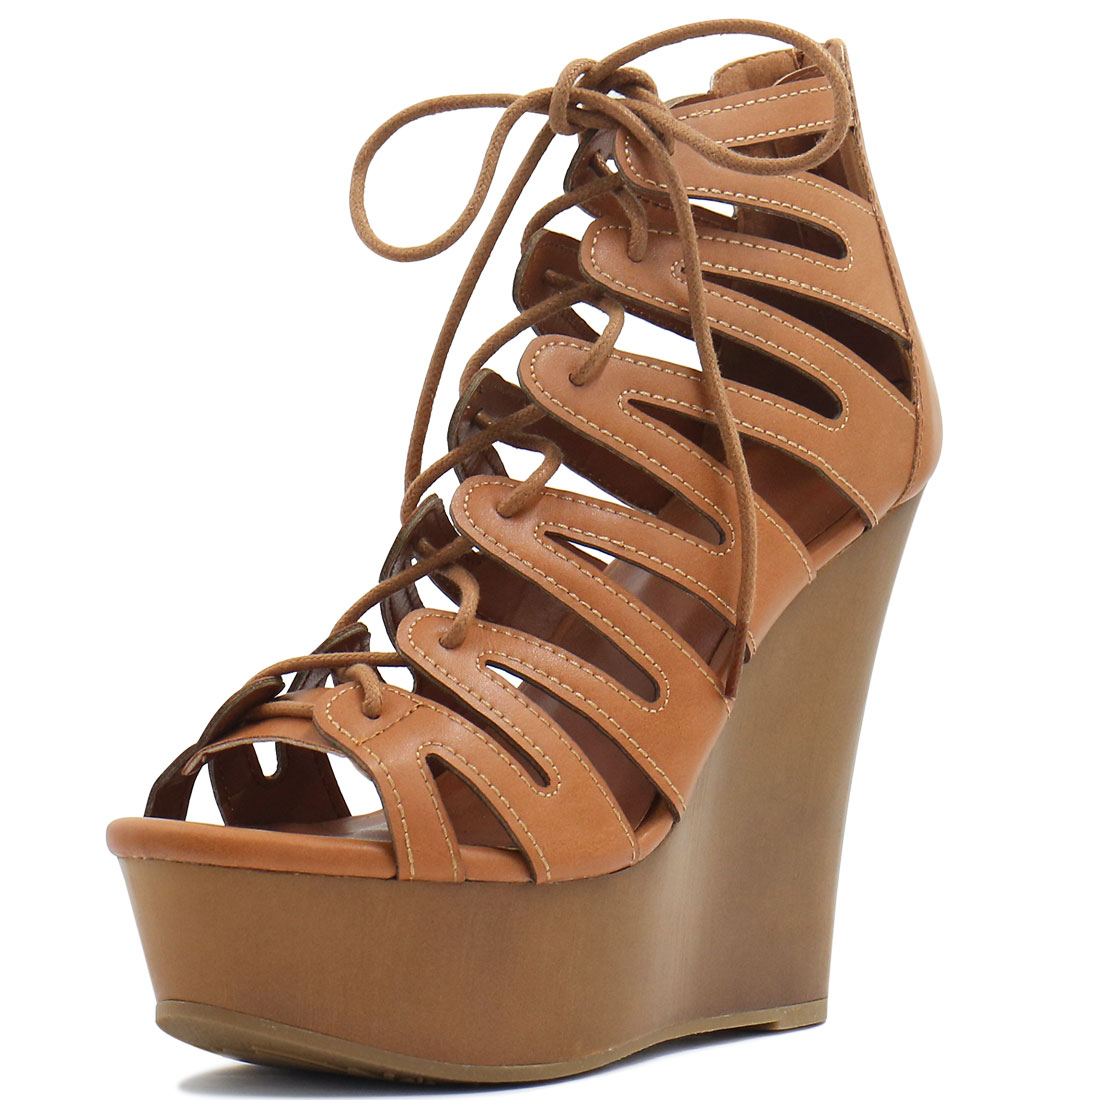 Woman Open Toe Lace-Up Cutout Platform Wedge Sandals Brown US 10